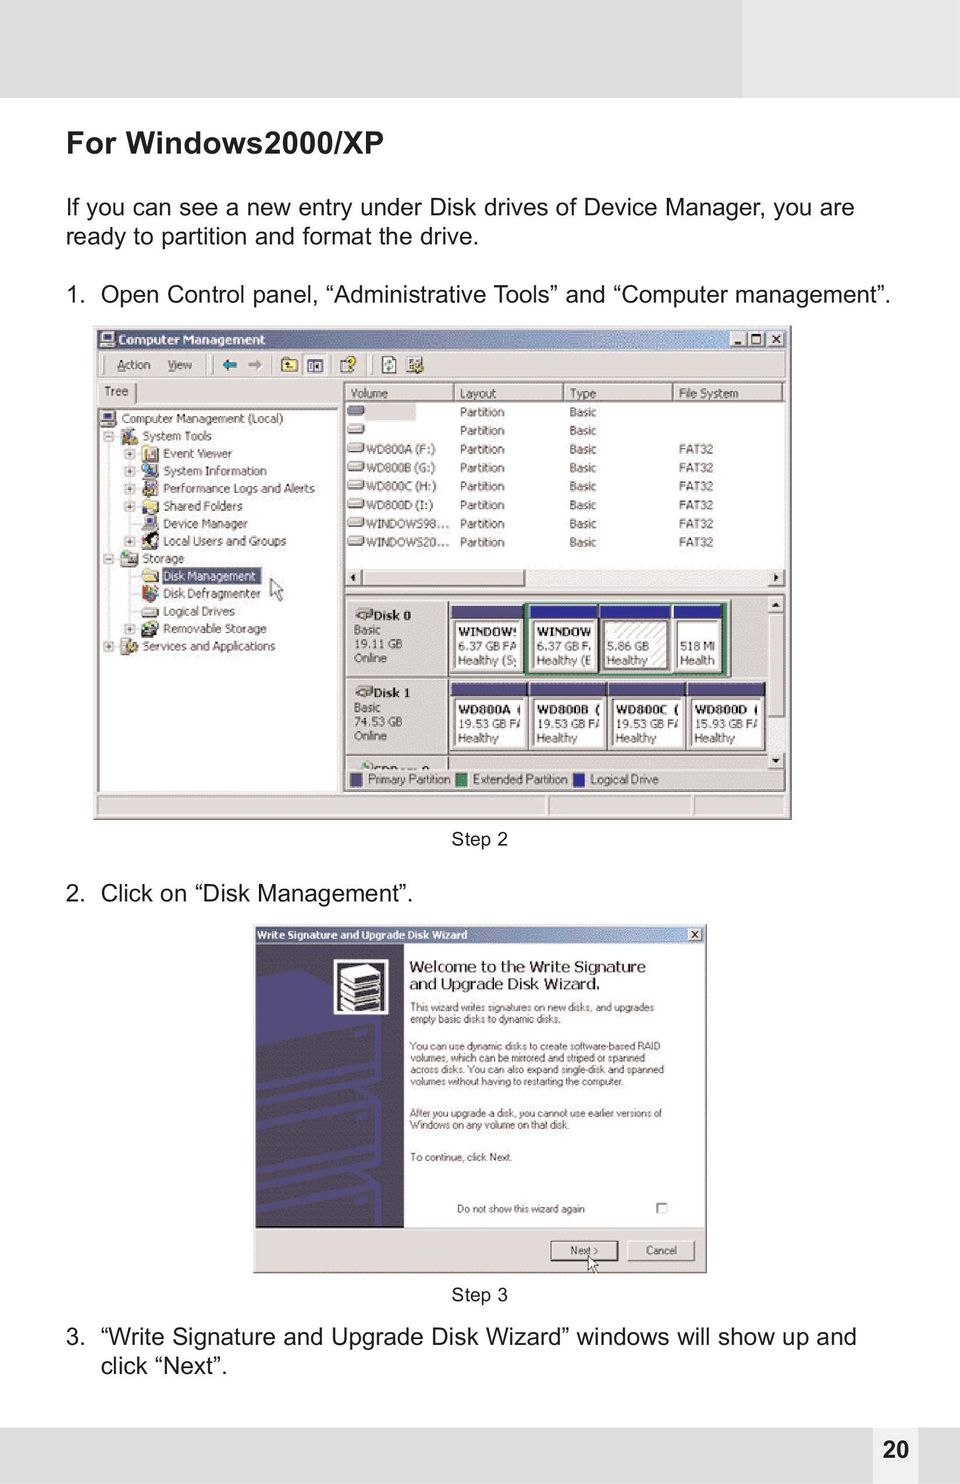 Open Control panel, Administrative Tools and Computer management. 2.